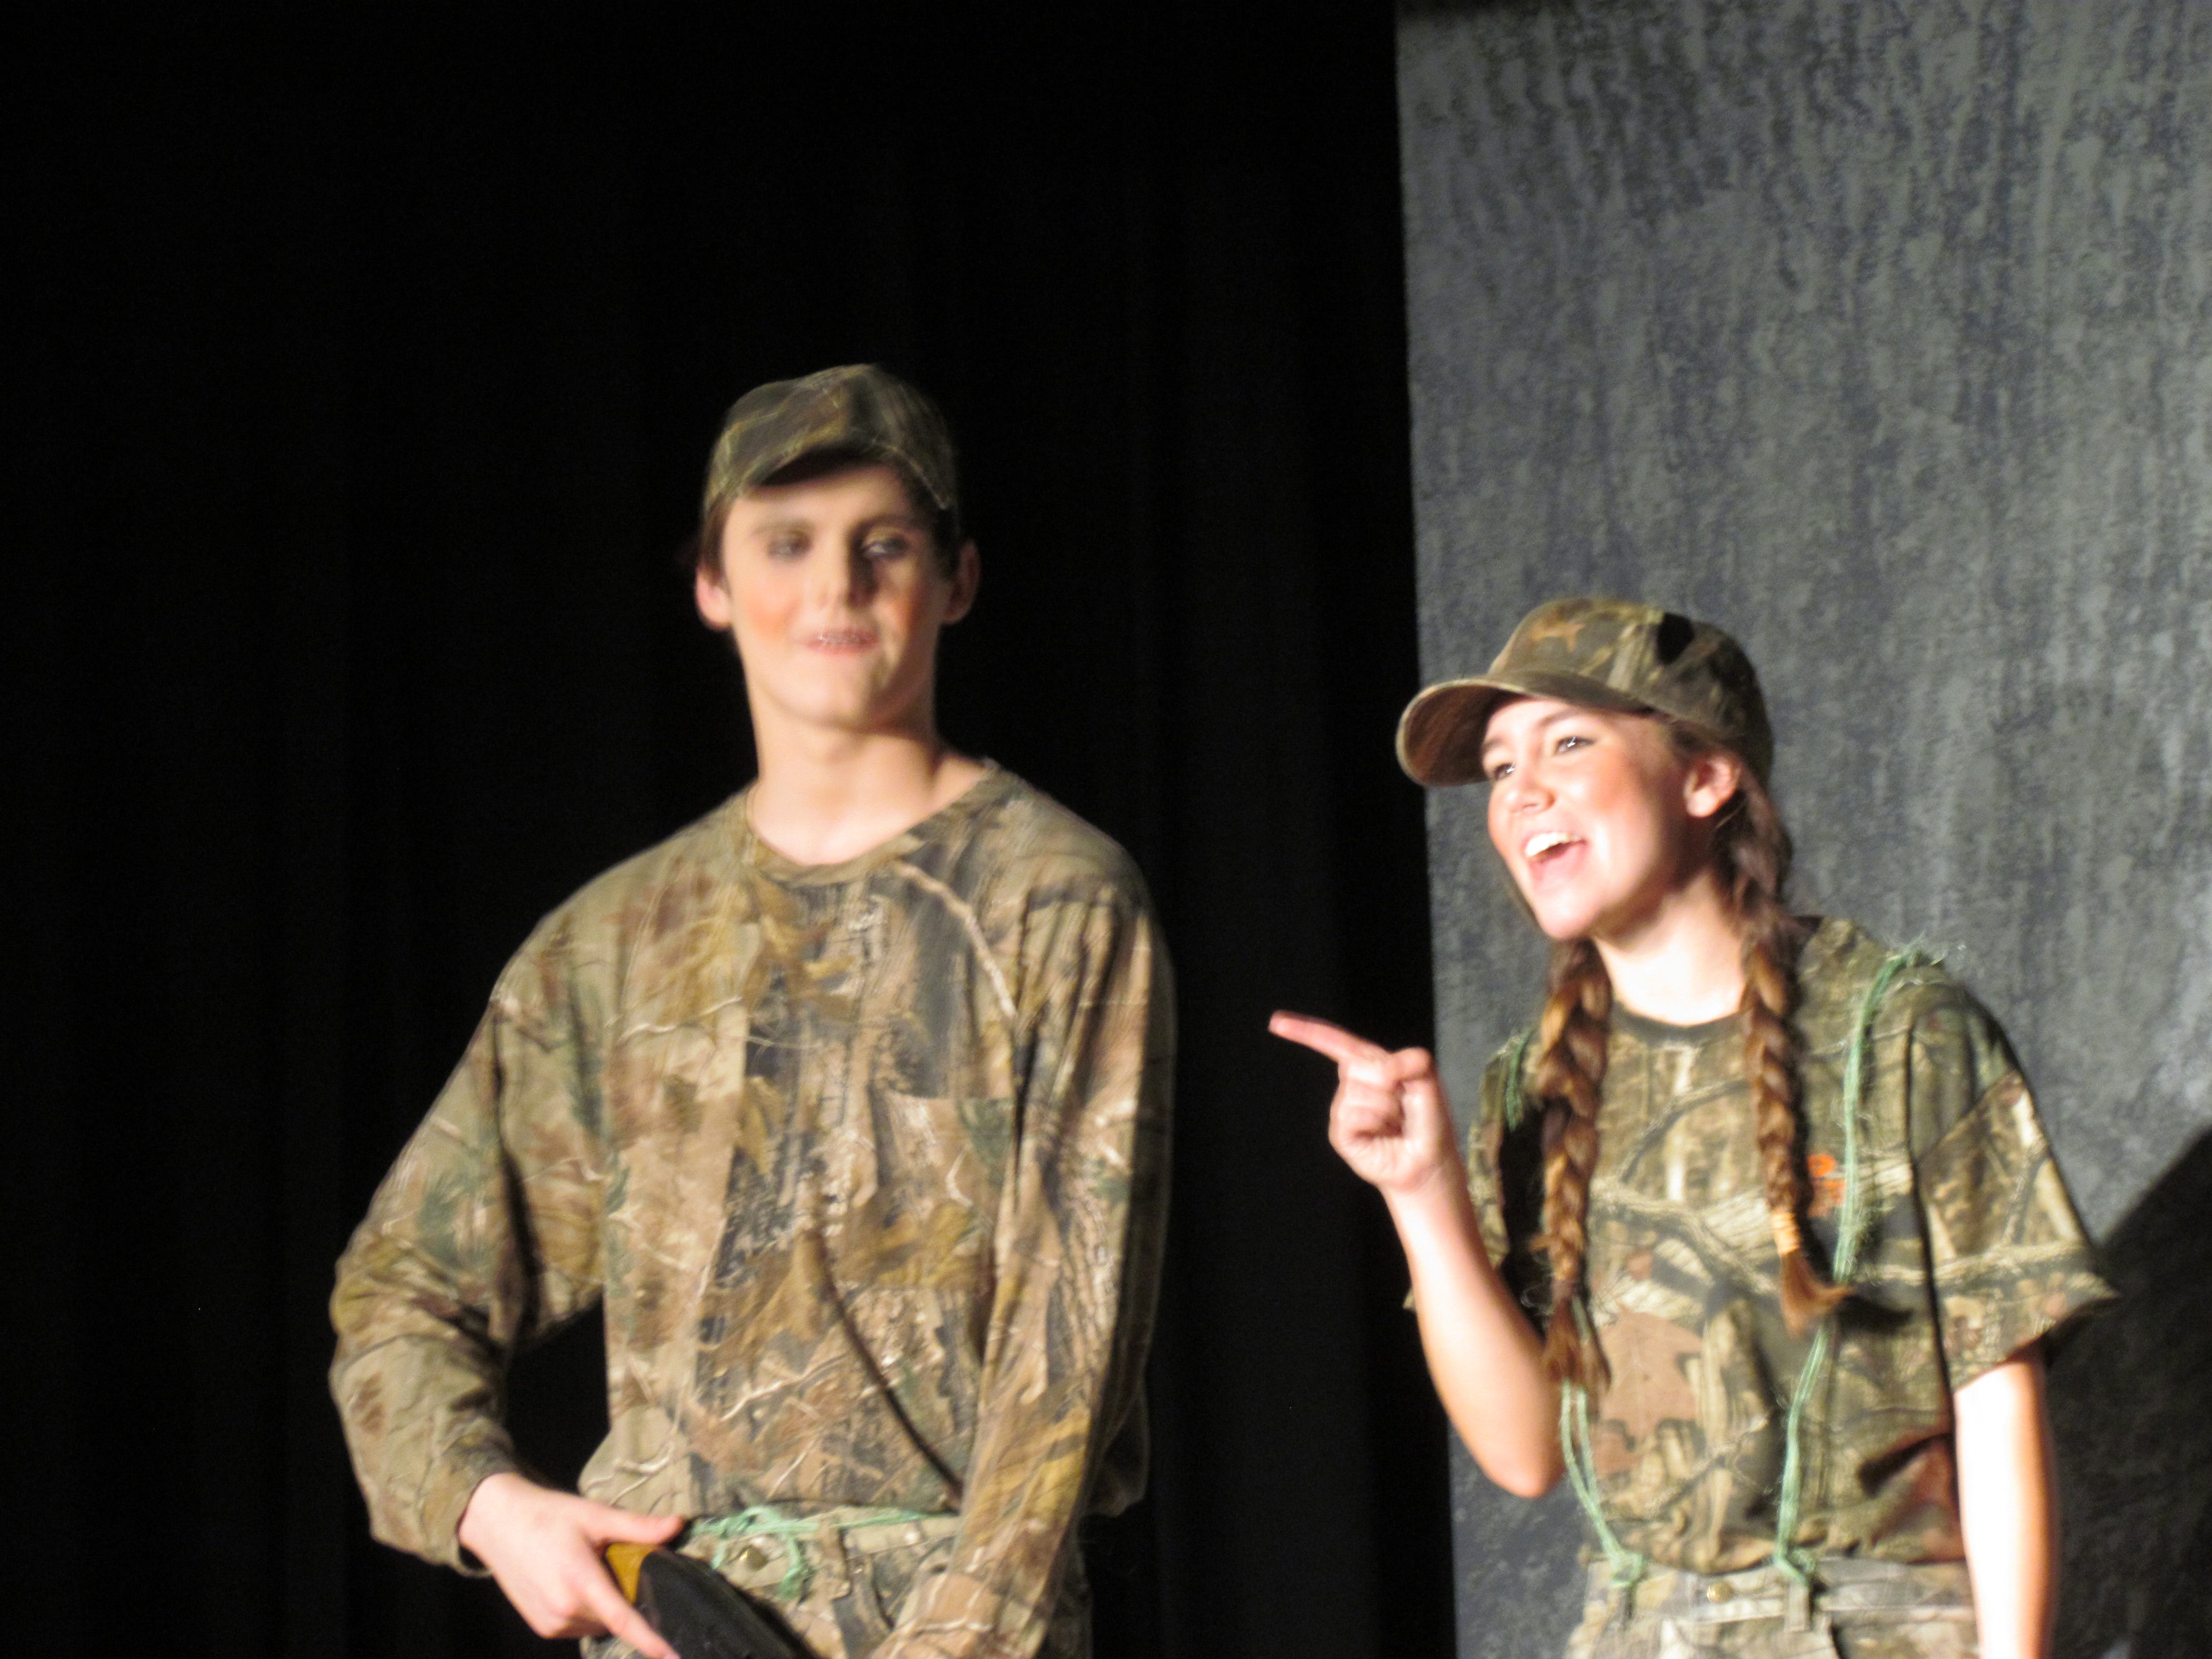 Betsy (Mollie Tibbetts) points out that she and Bubba (Cody Sicard) were out hunting when out of nowhere presents fell from the sky.